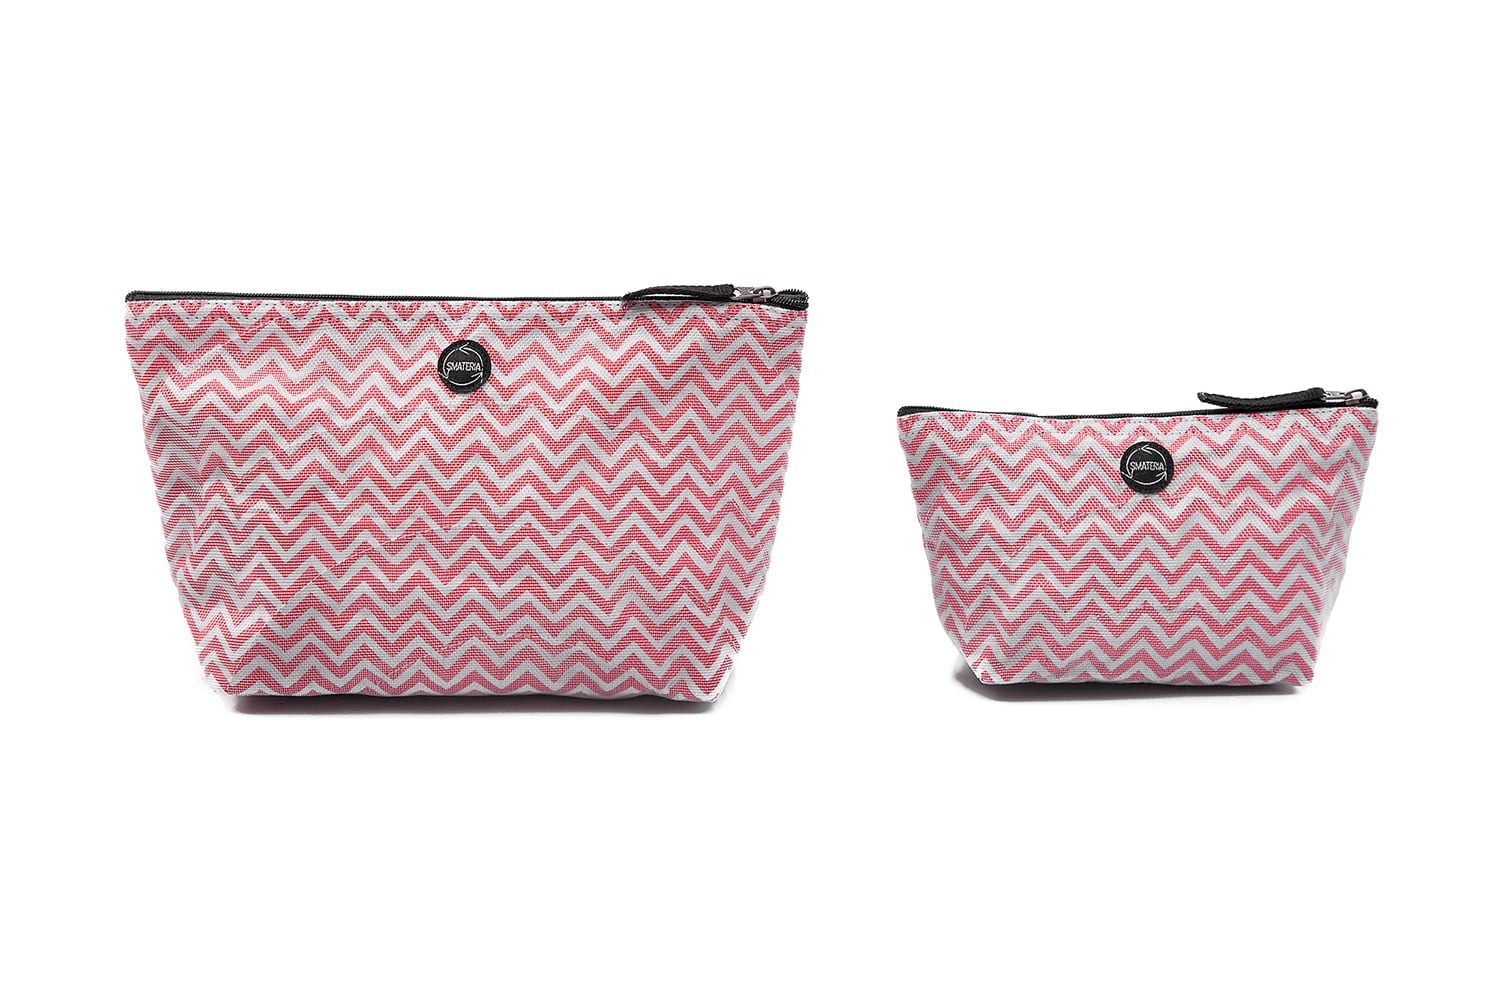 Nick - Ethical Vanity Case - Large - Small - Red Chevron